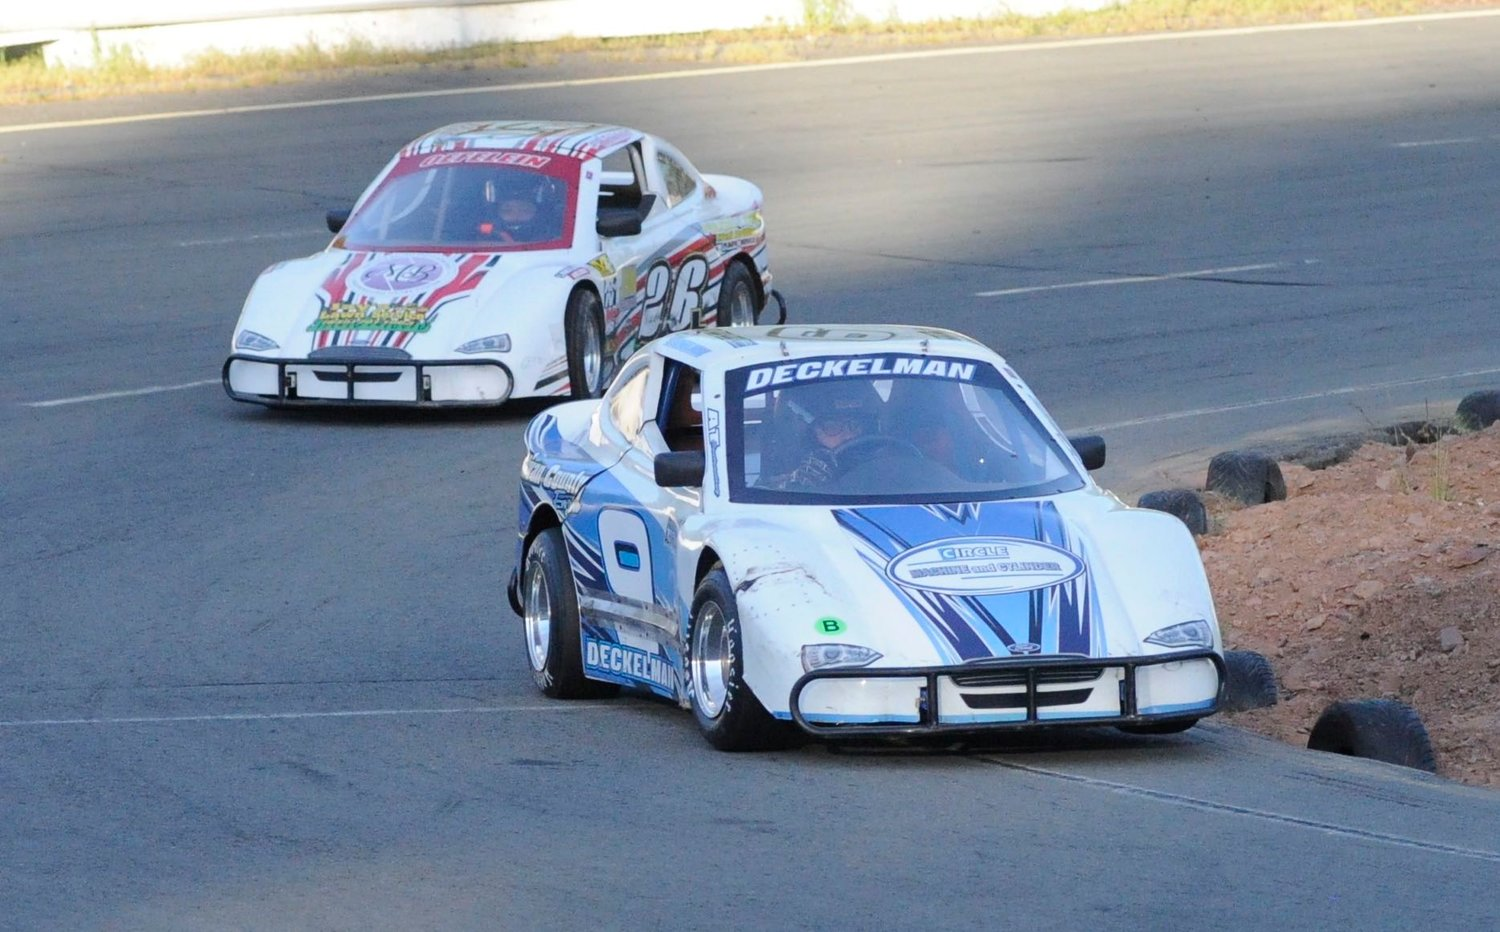 In the lead. Monika Deckelman holds off 12-year-old Leland Oefelein-Brush in car #26 during a series of practice laps.